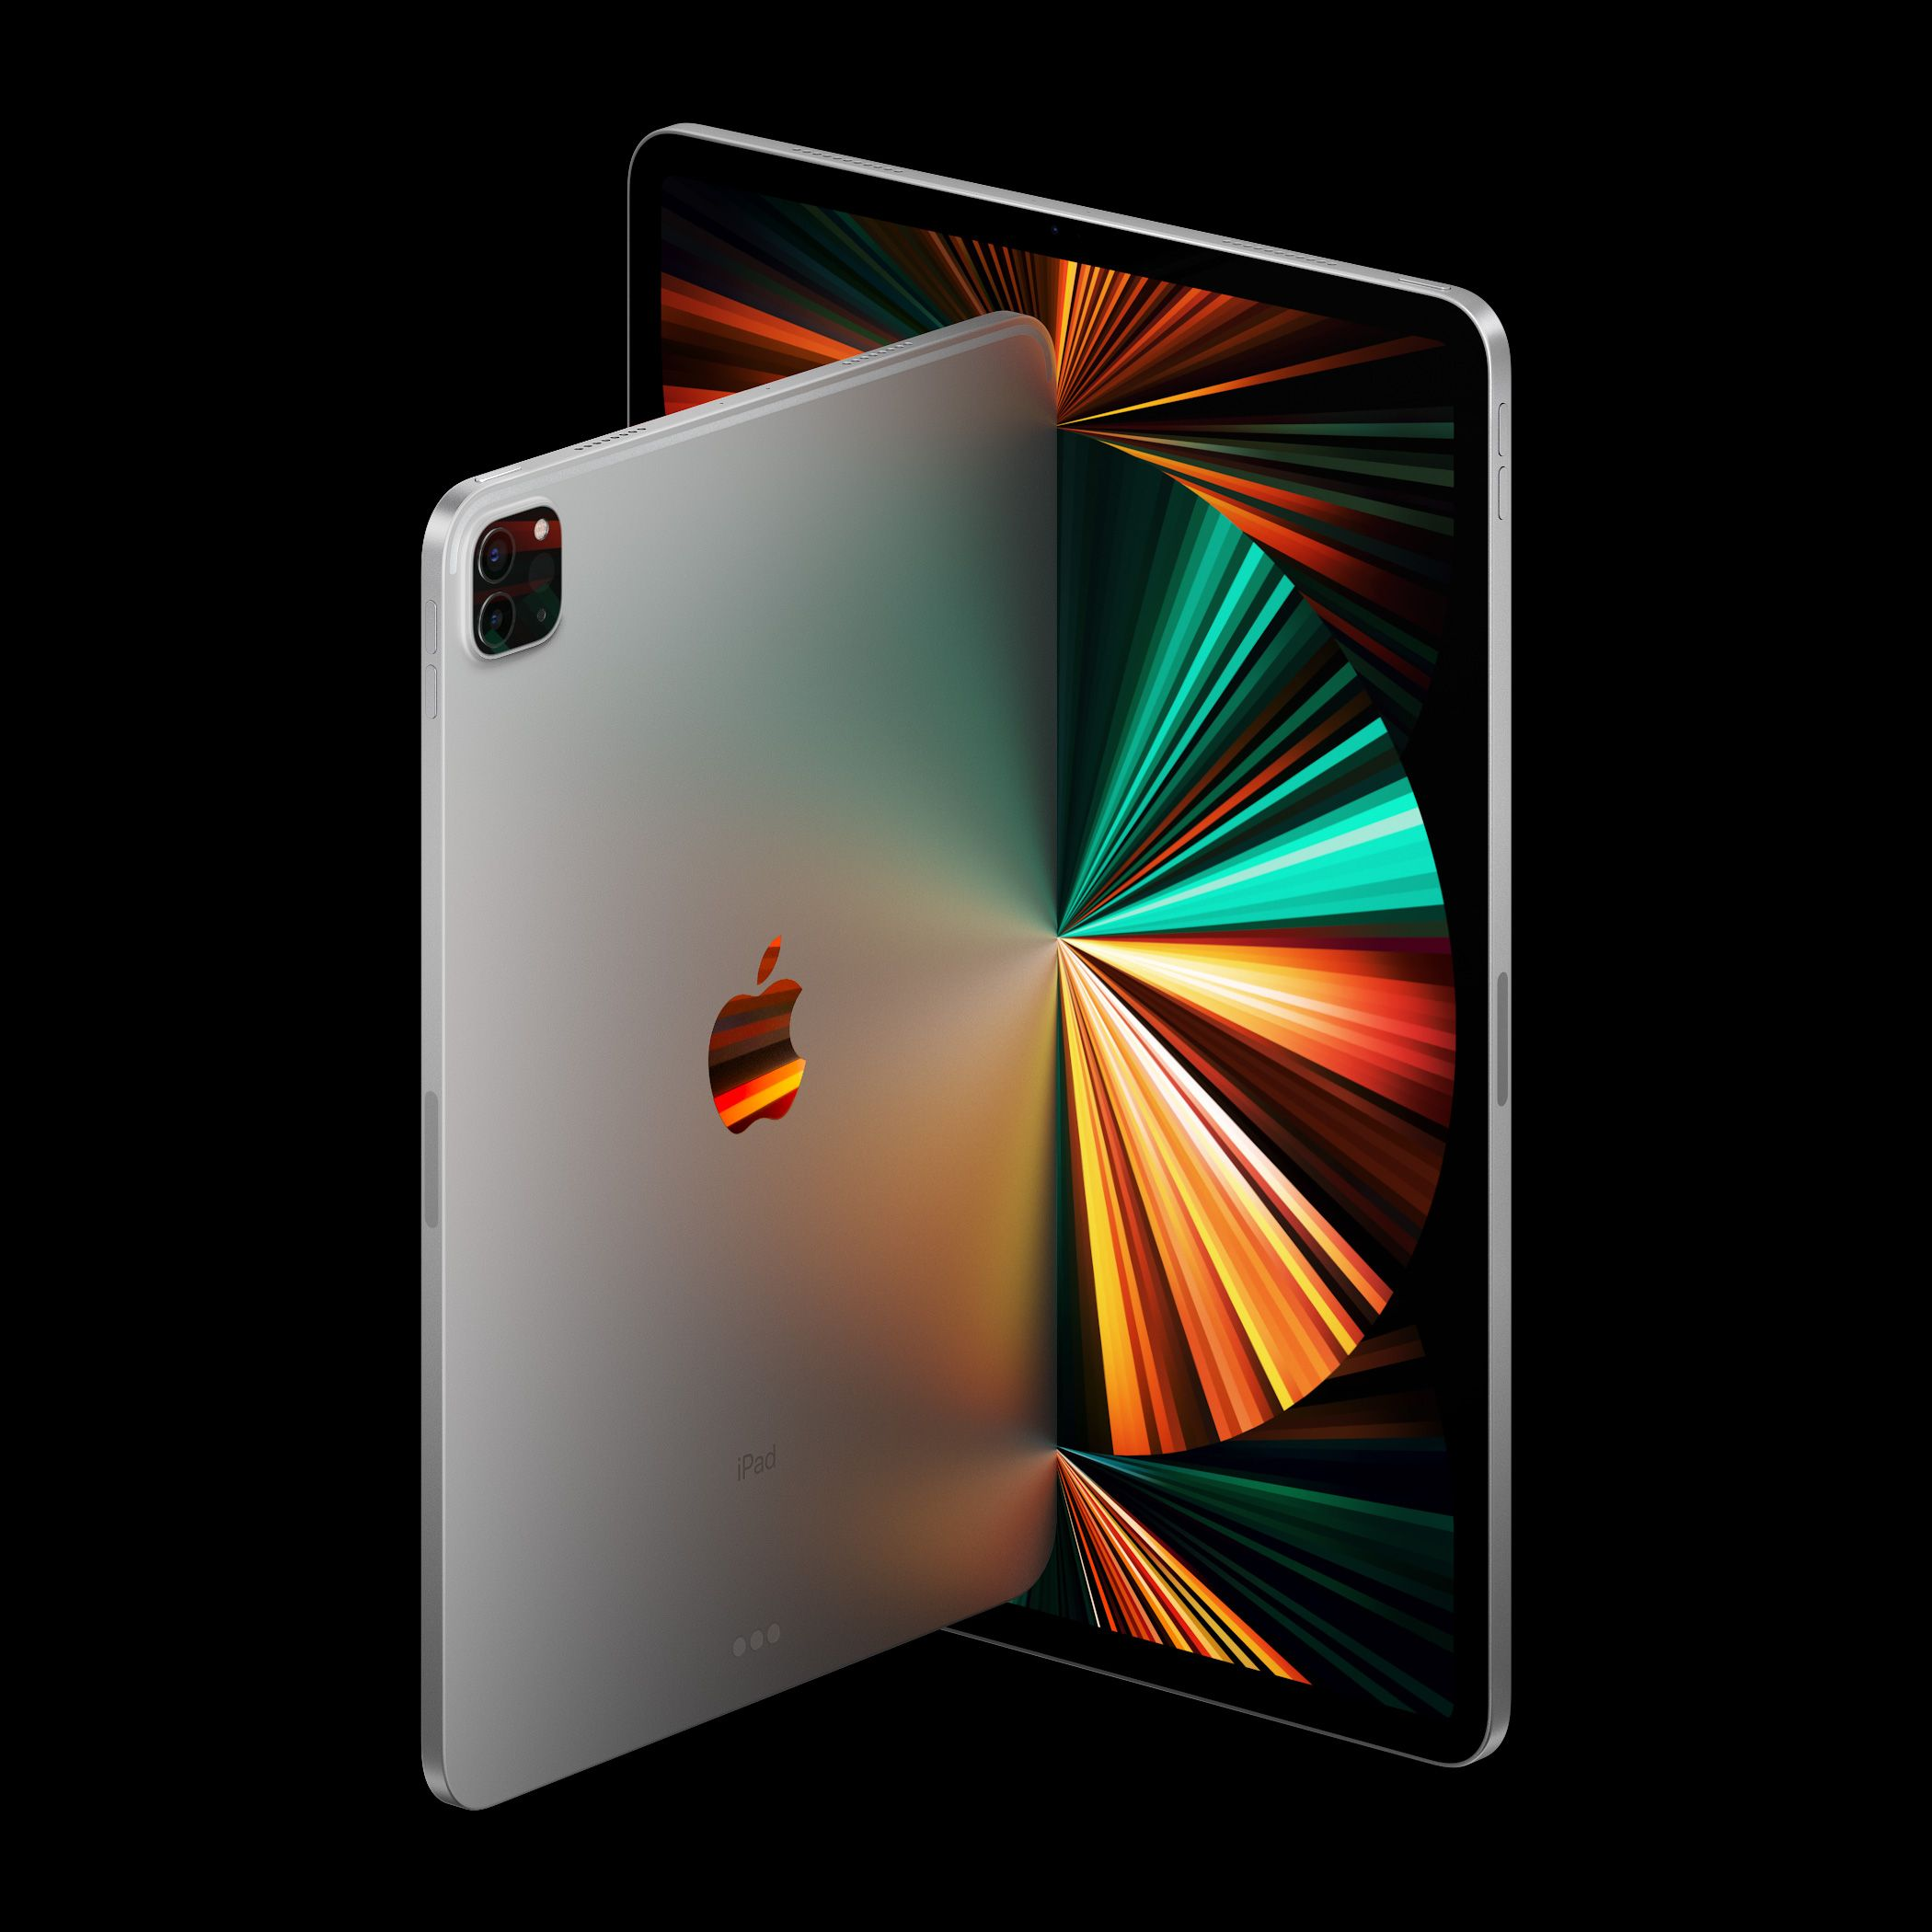 New Apple iPad Pro deliver more power with faster M1 chip